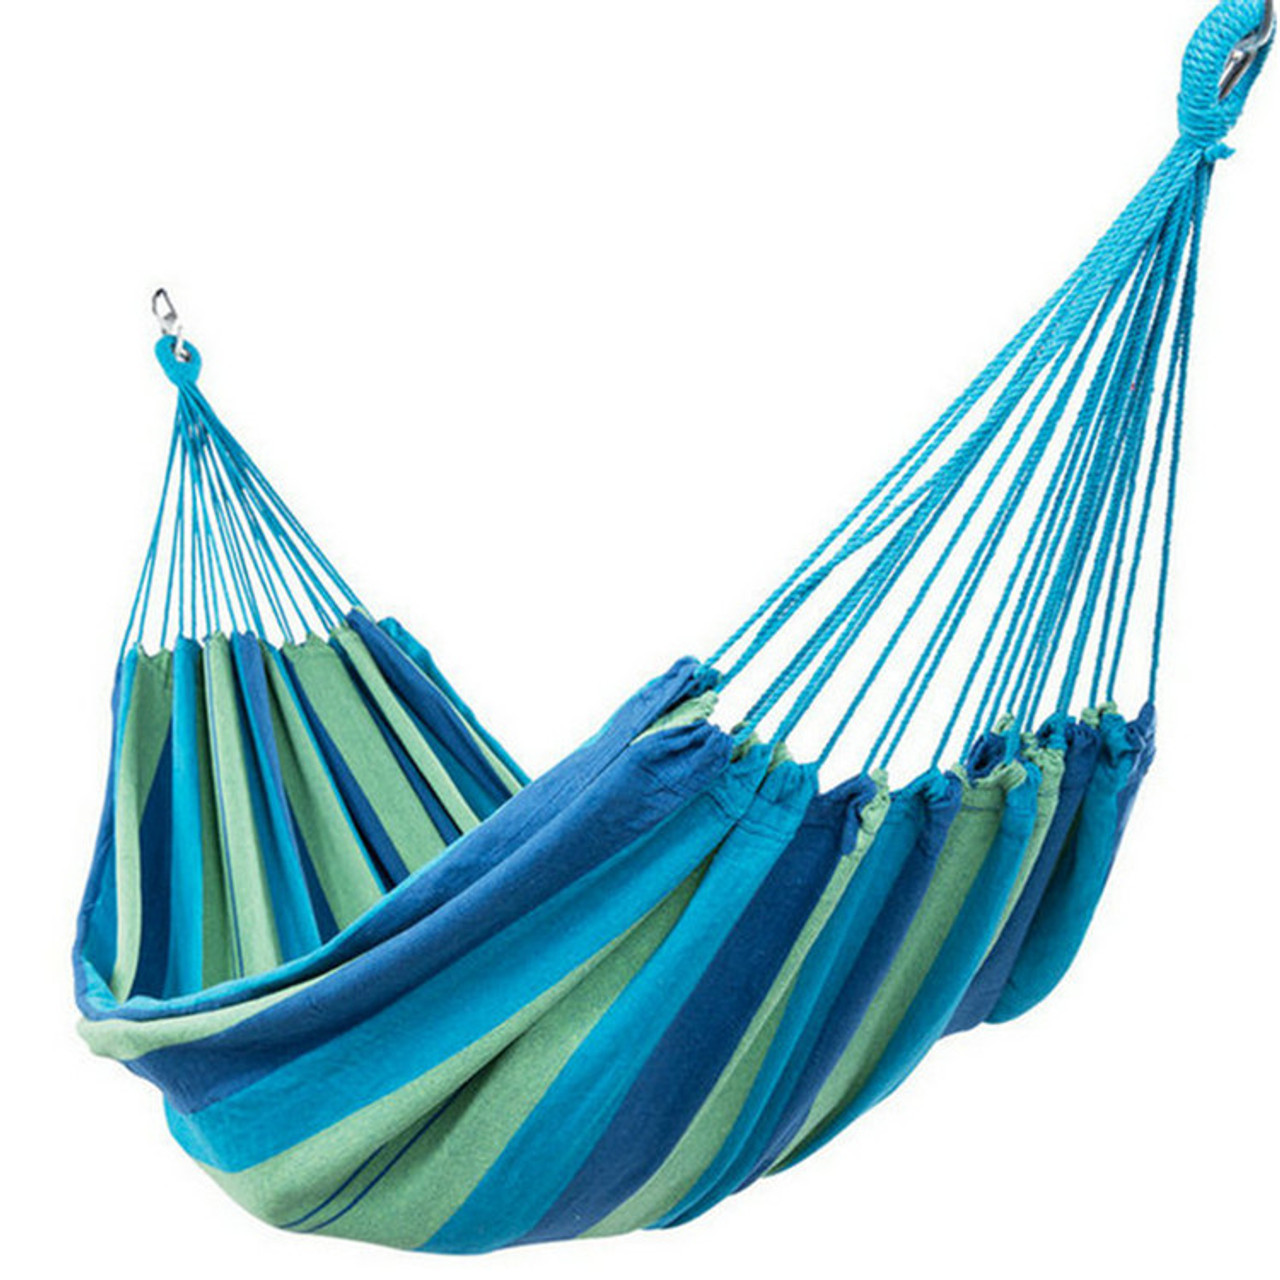 lazy daze hammocks outdoor portable double size canvas hammock for two person with carry bag portable double size cotton hammock with carry bag450 pounds      rh   sundaleoutdoor